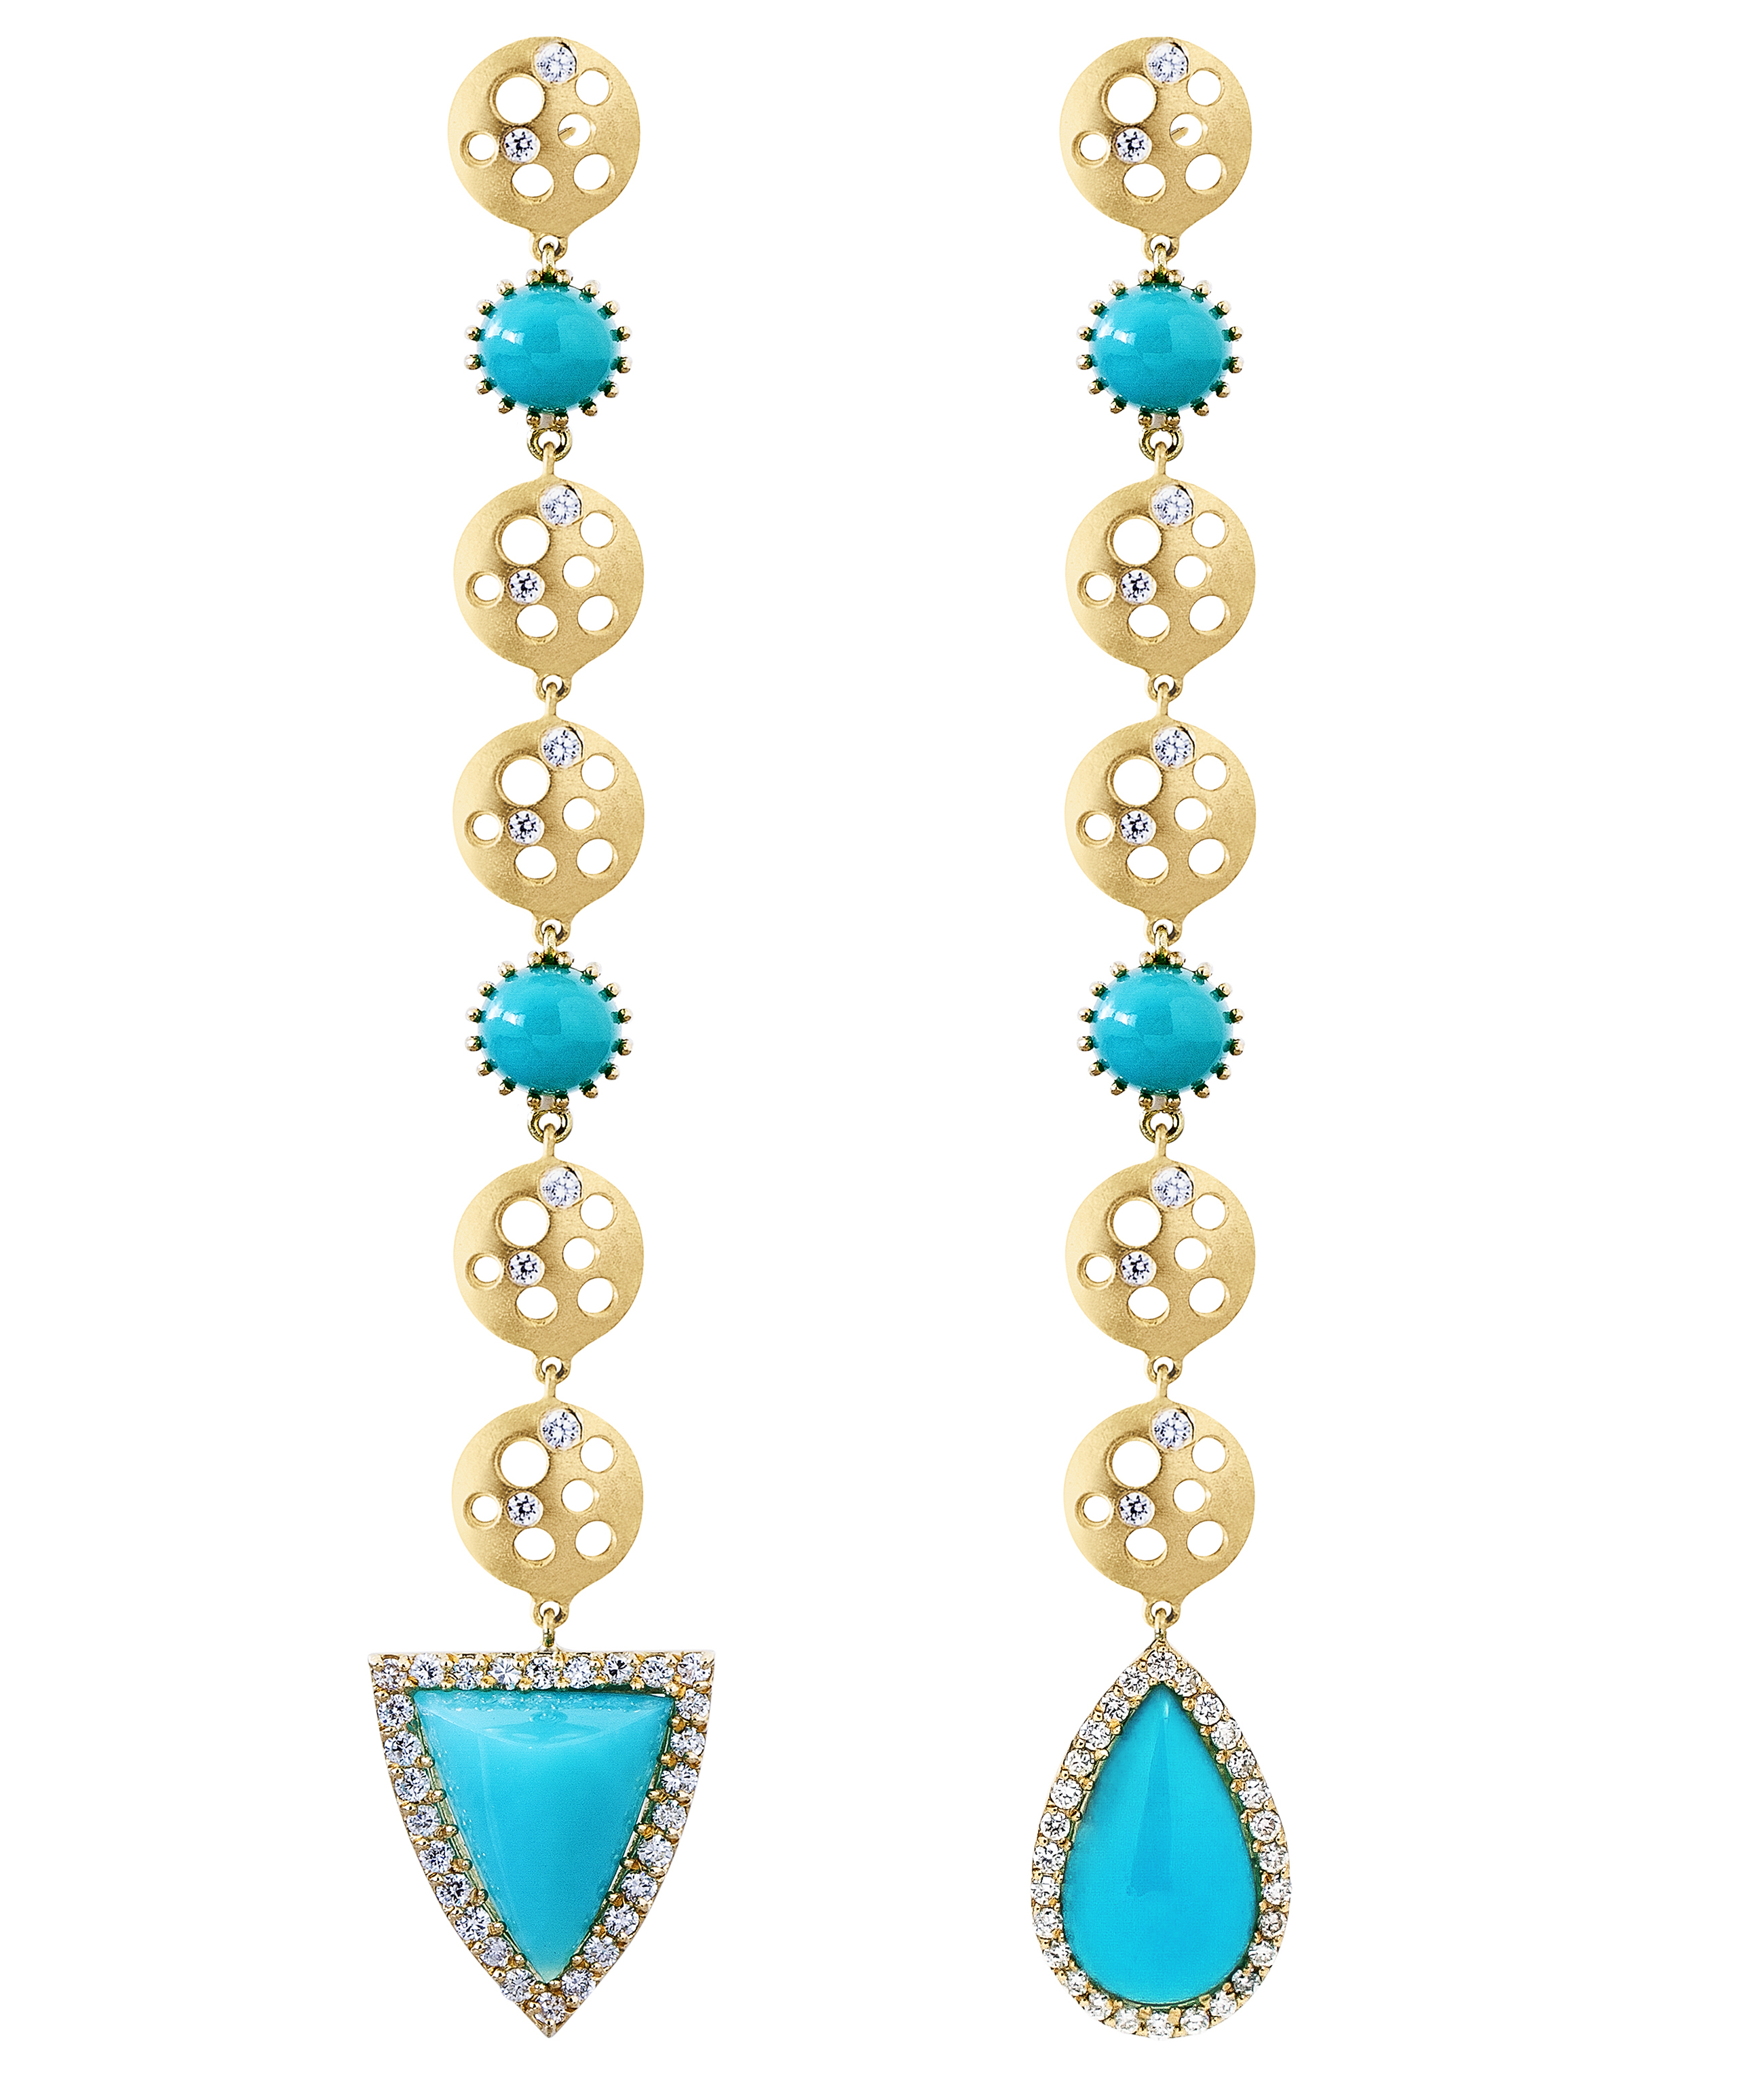 Dana Bronfman mismatched chrysocolla earrings | JCK On Your Market